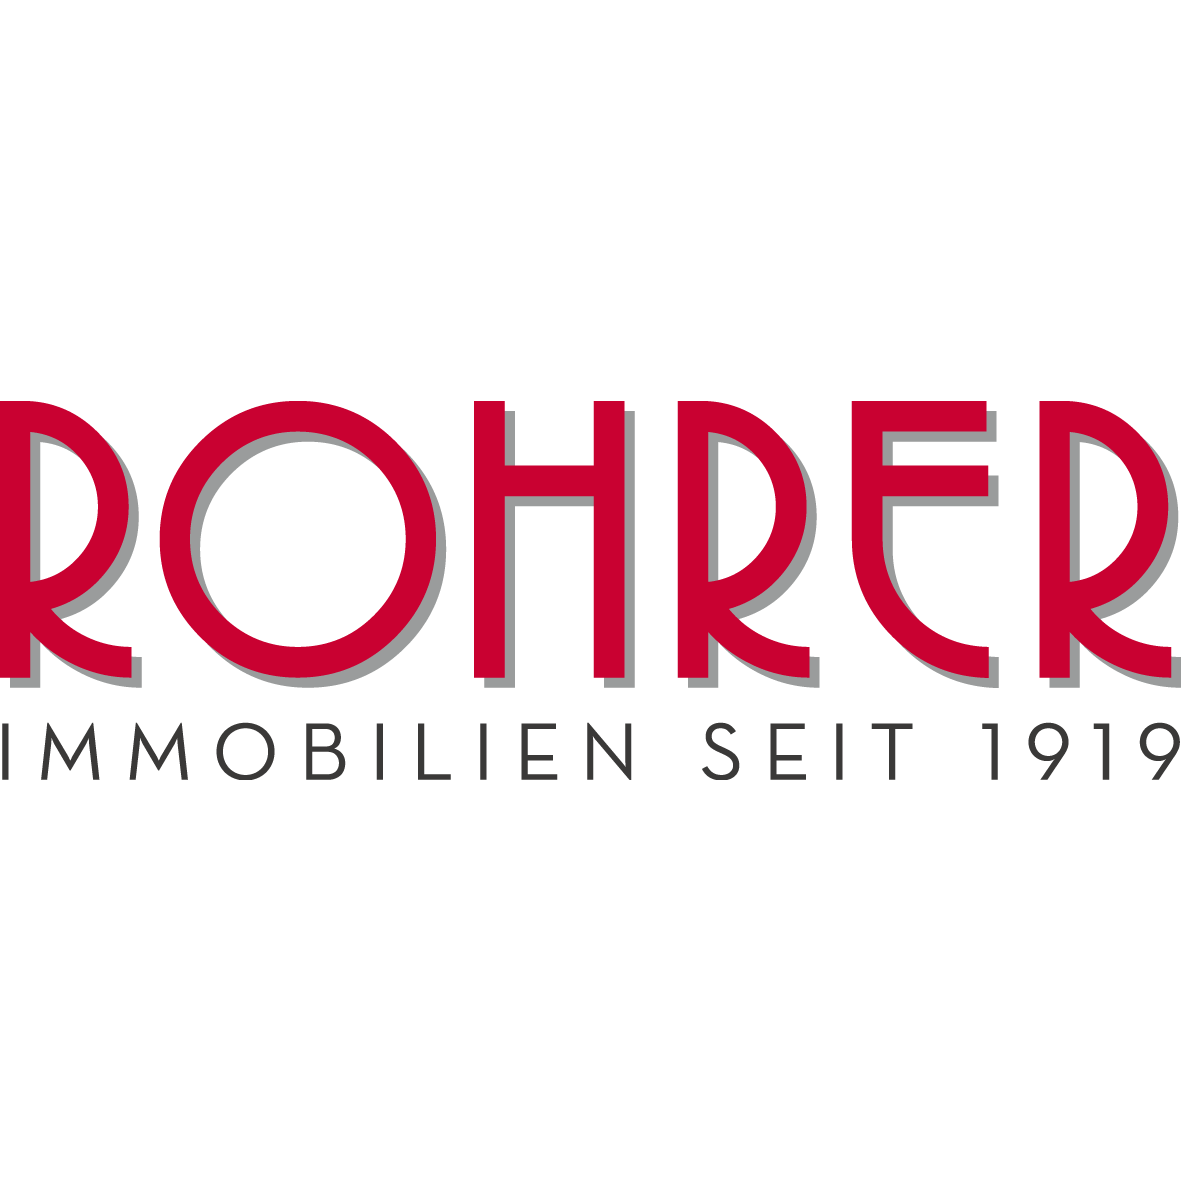 rohrer immobilien gmbh m nchen unternehmen. Black Bedroom Furniture Sets. Home Design Ideas